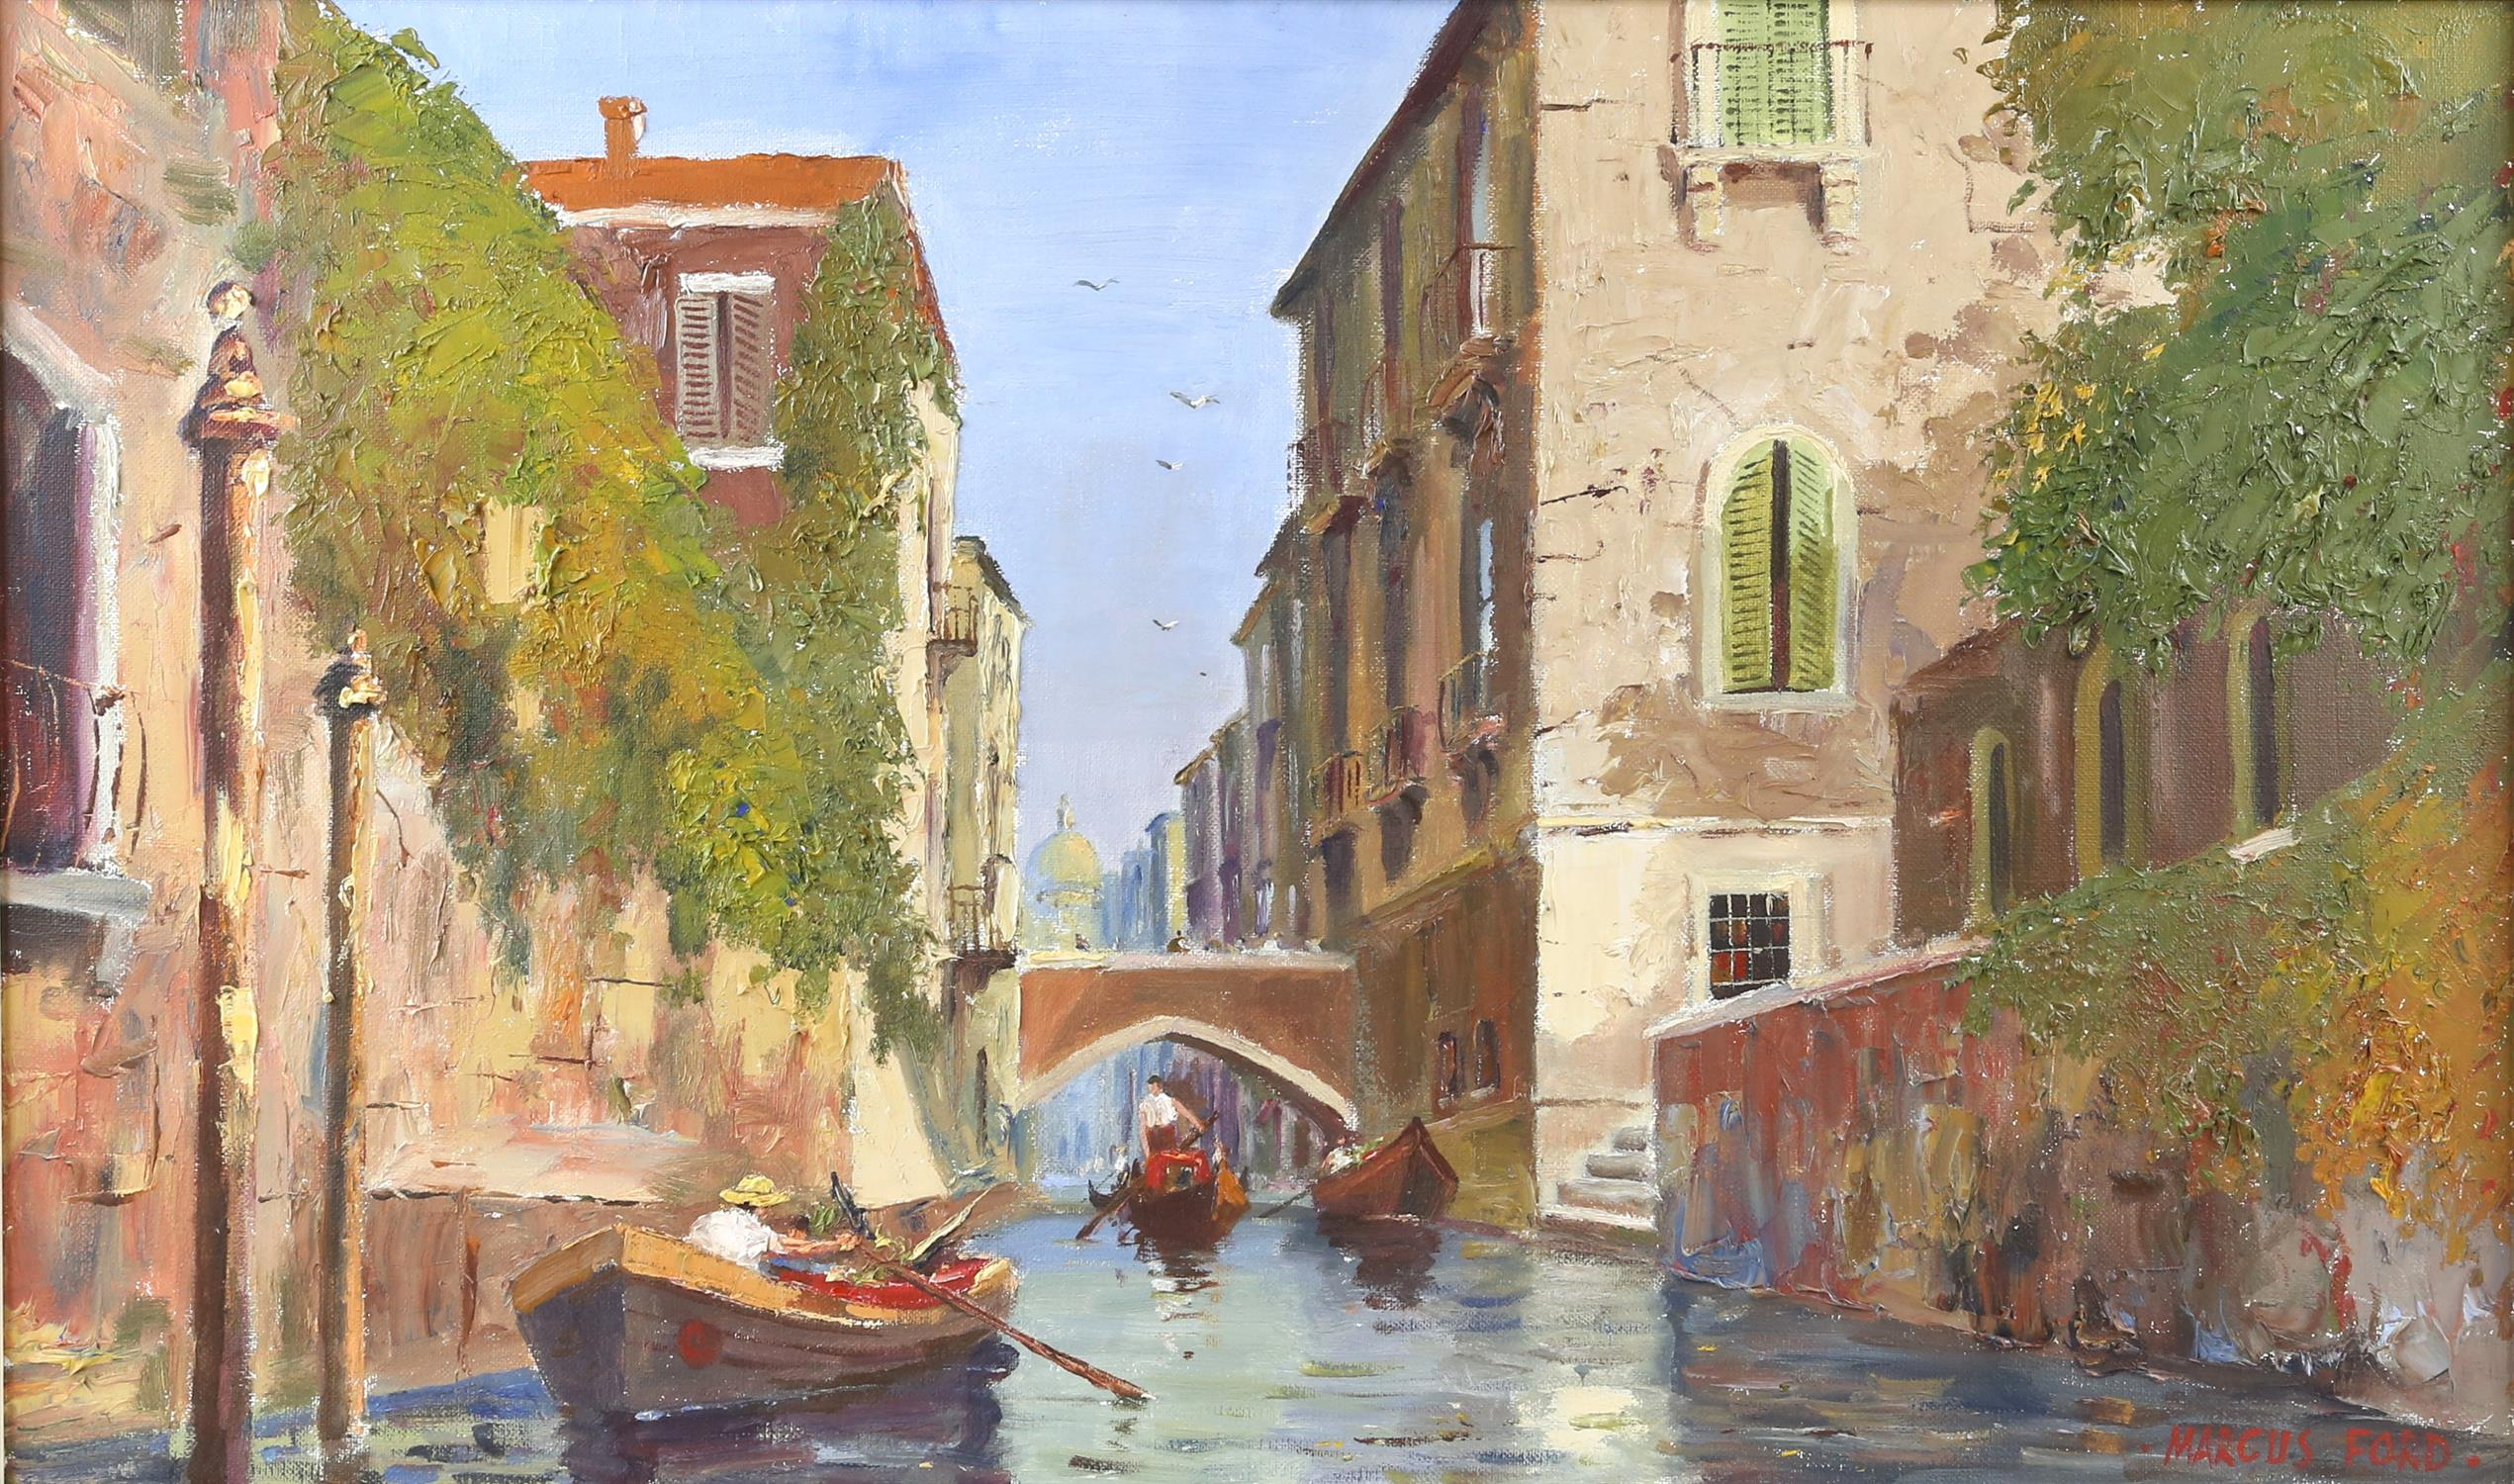 Marcus Ford (British 1914-1989), Venice canal scene, signed, oil on canvas, 44.5 x 74.5cm,